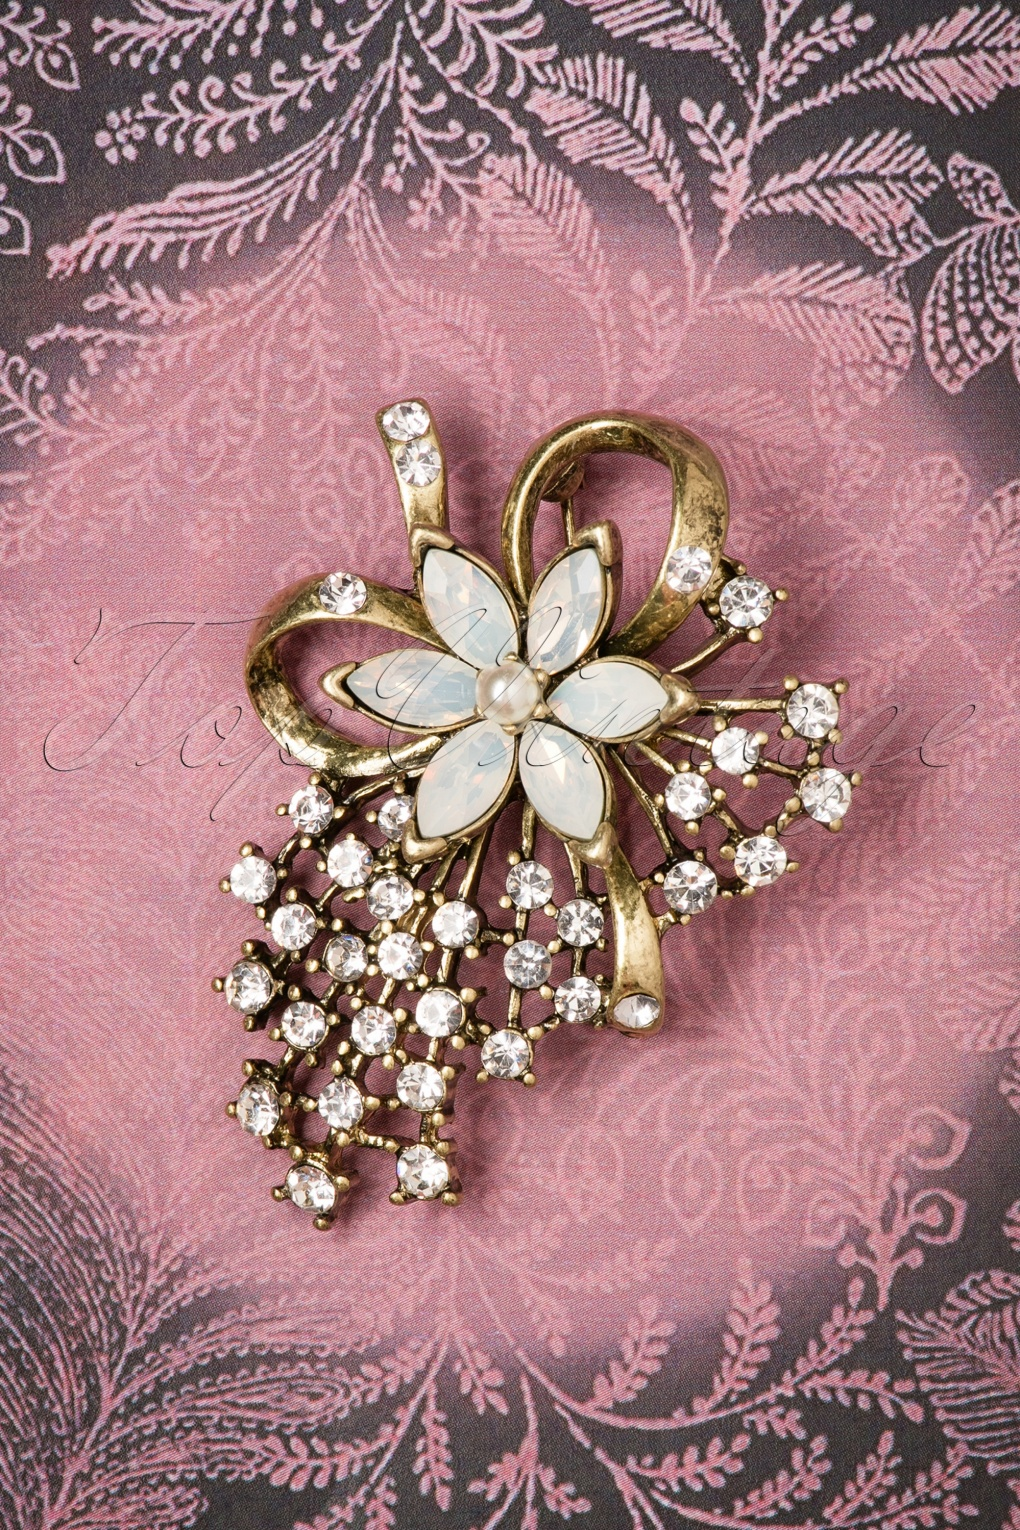 1930s Jewelry | Art Deco Style Jewelry 30s Miriam Haskell Pearl Brooch in Gold £22.27 AT vintagedancer.com